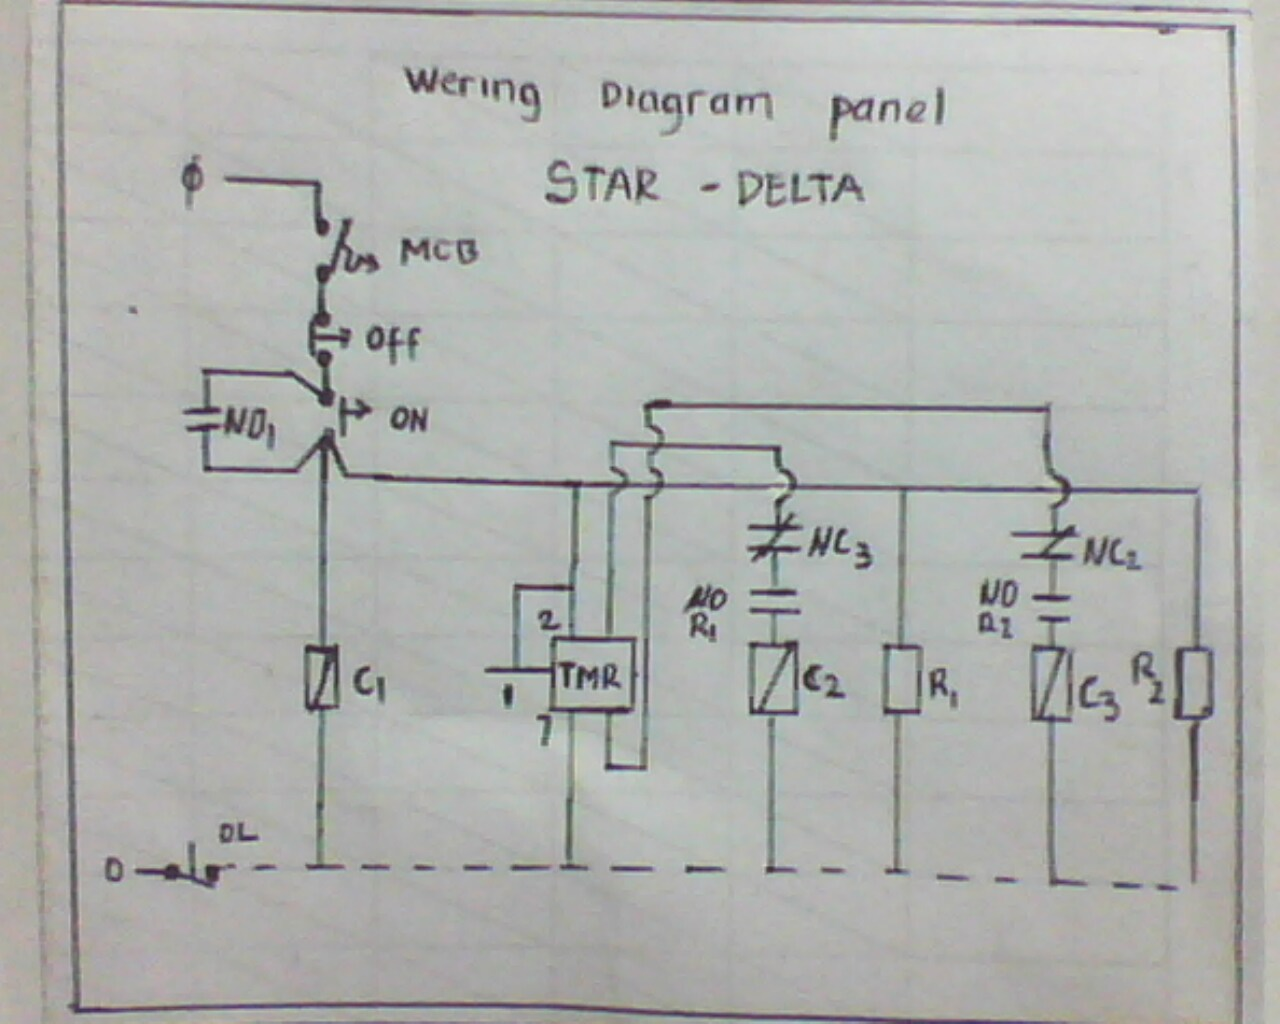 Three Phase Motor Connection Star Delta Without Timer Control Diagram